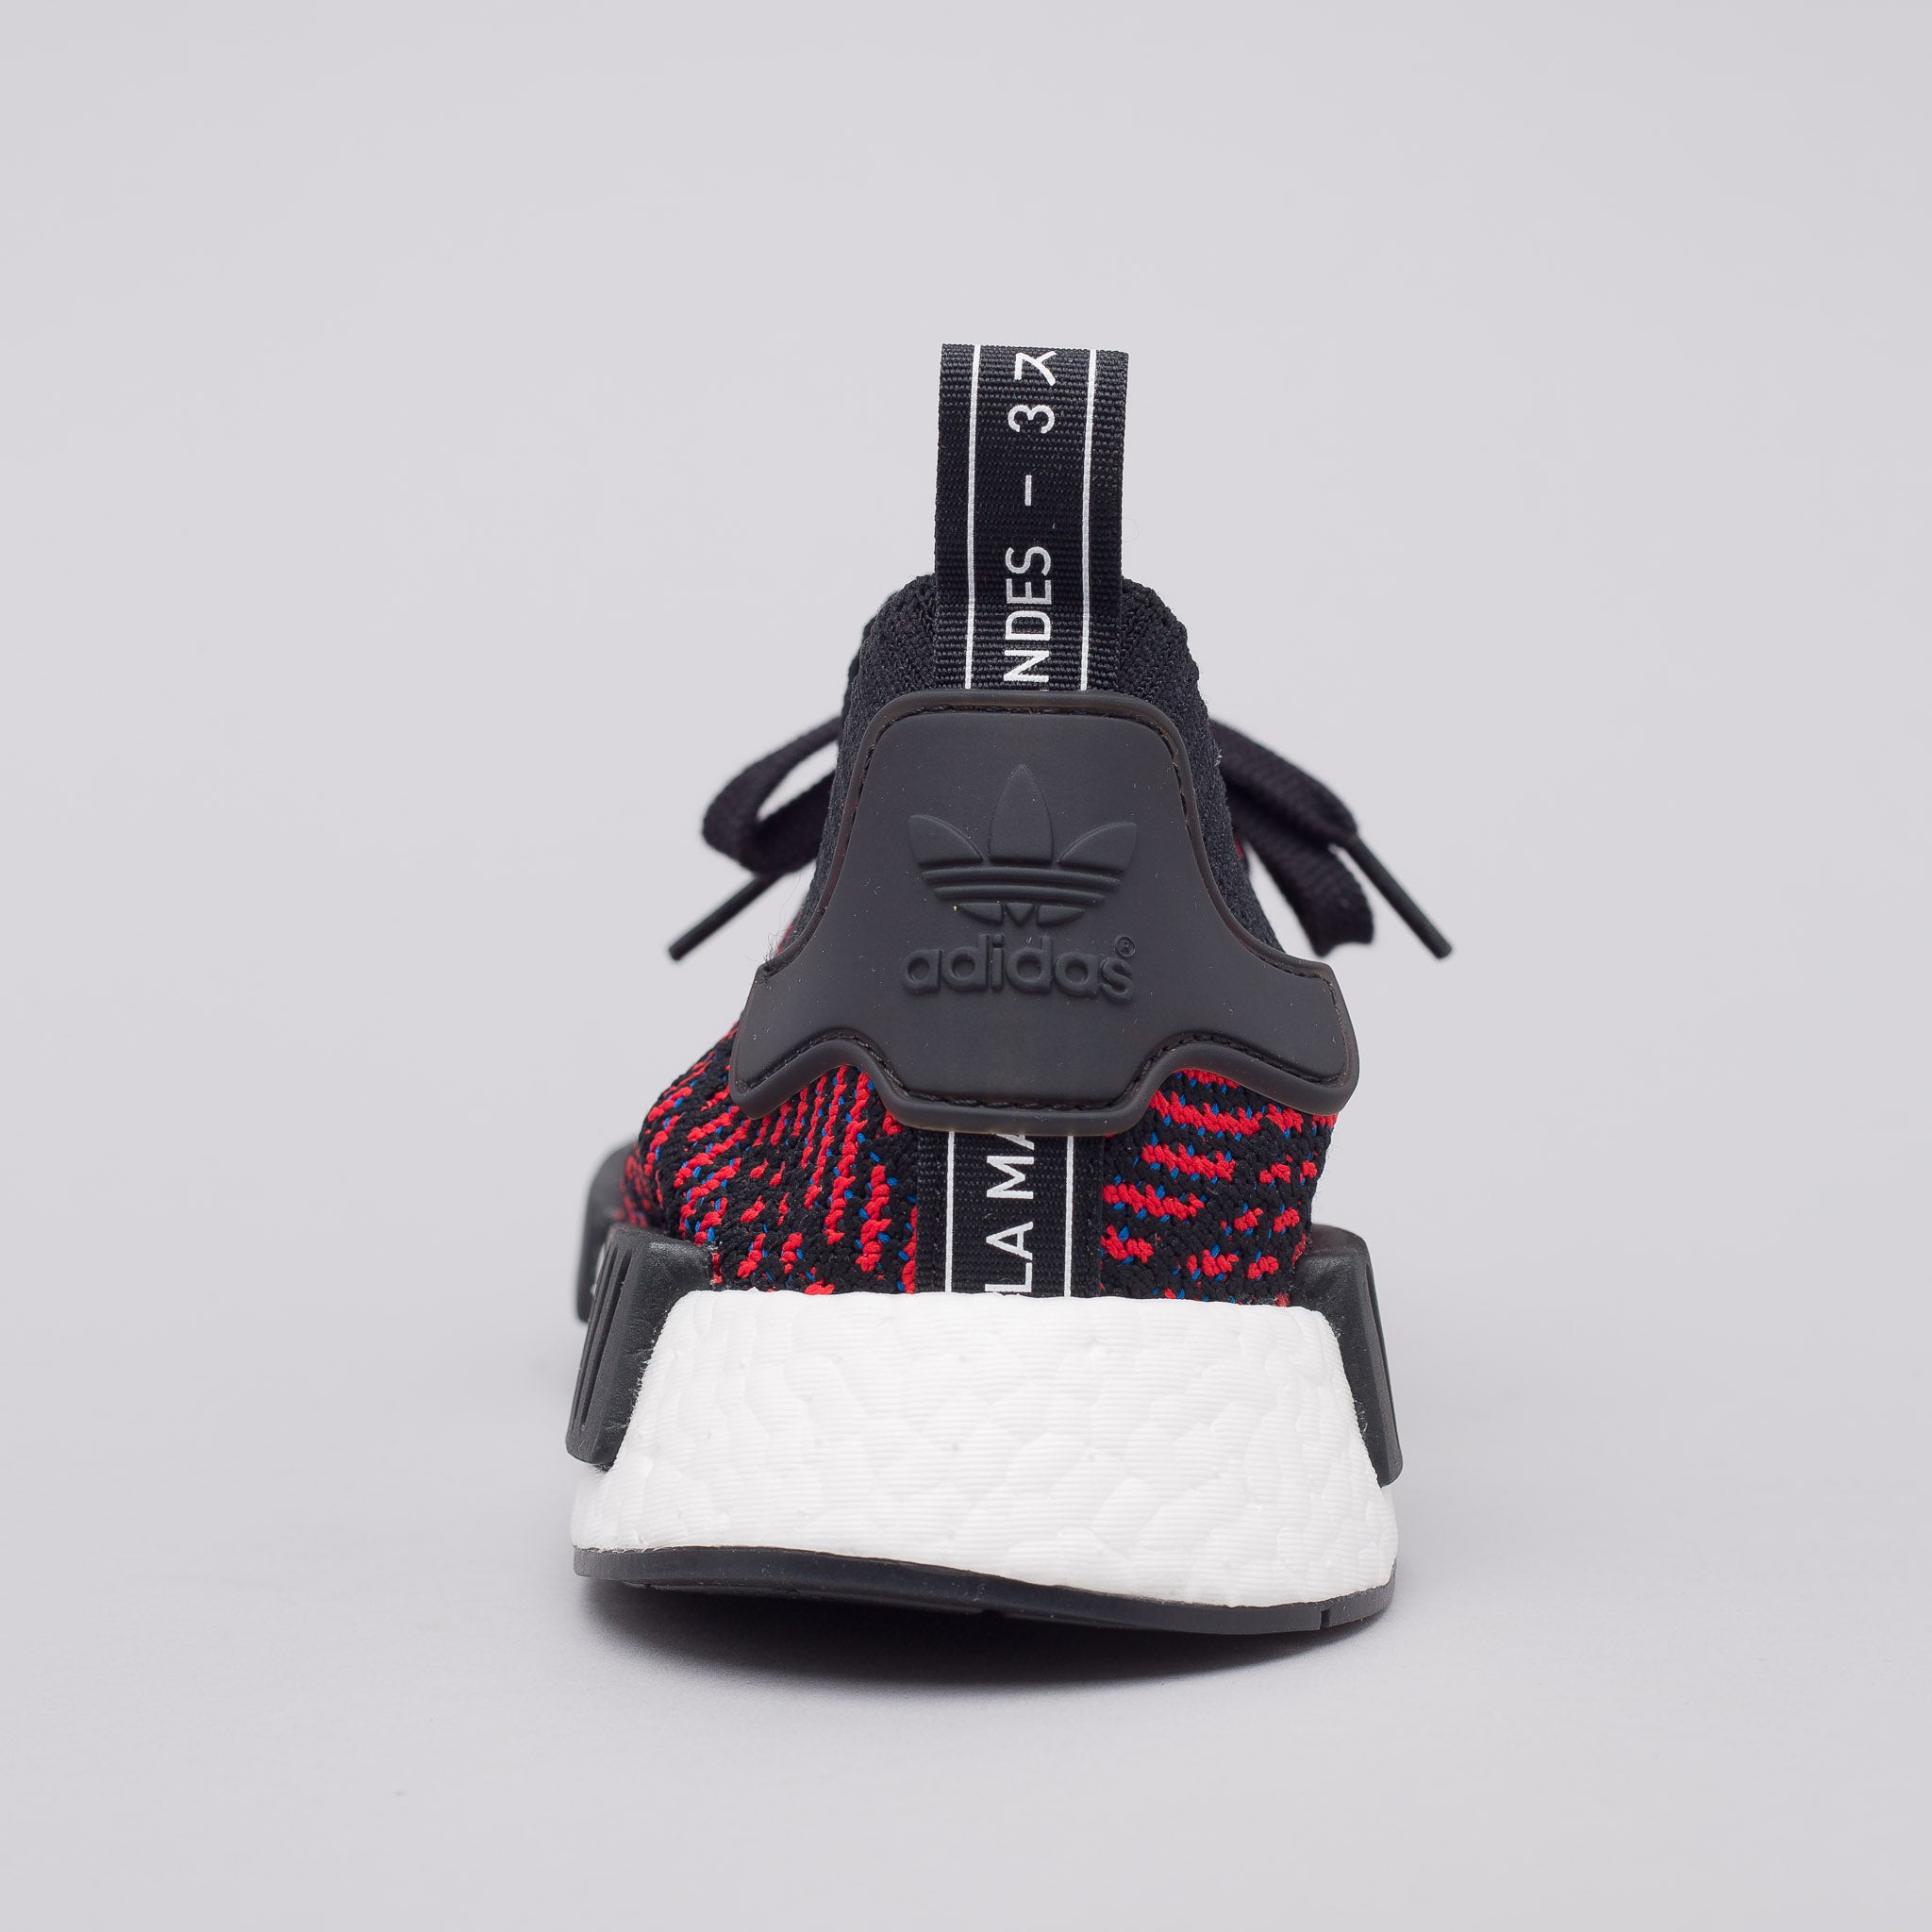 adidas Originals NMD R1 Releasing Saturday Culture Kings